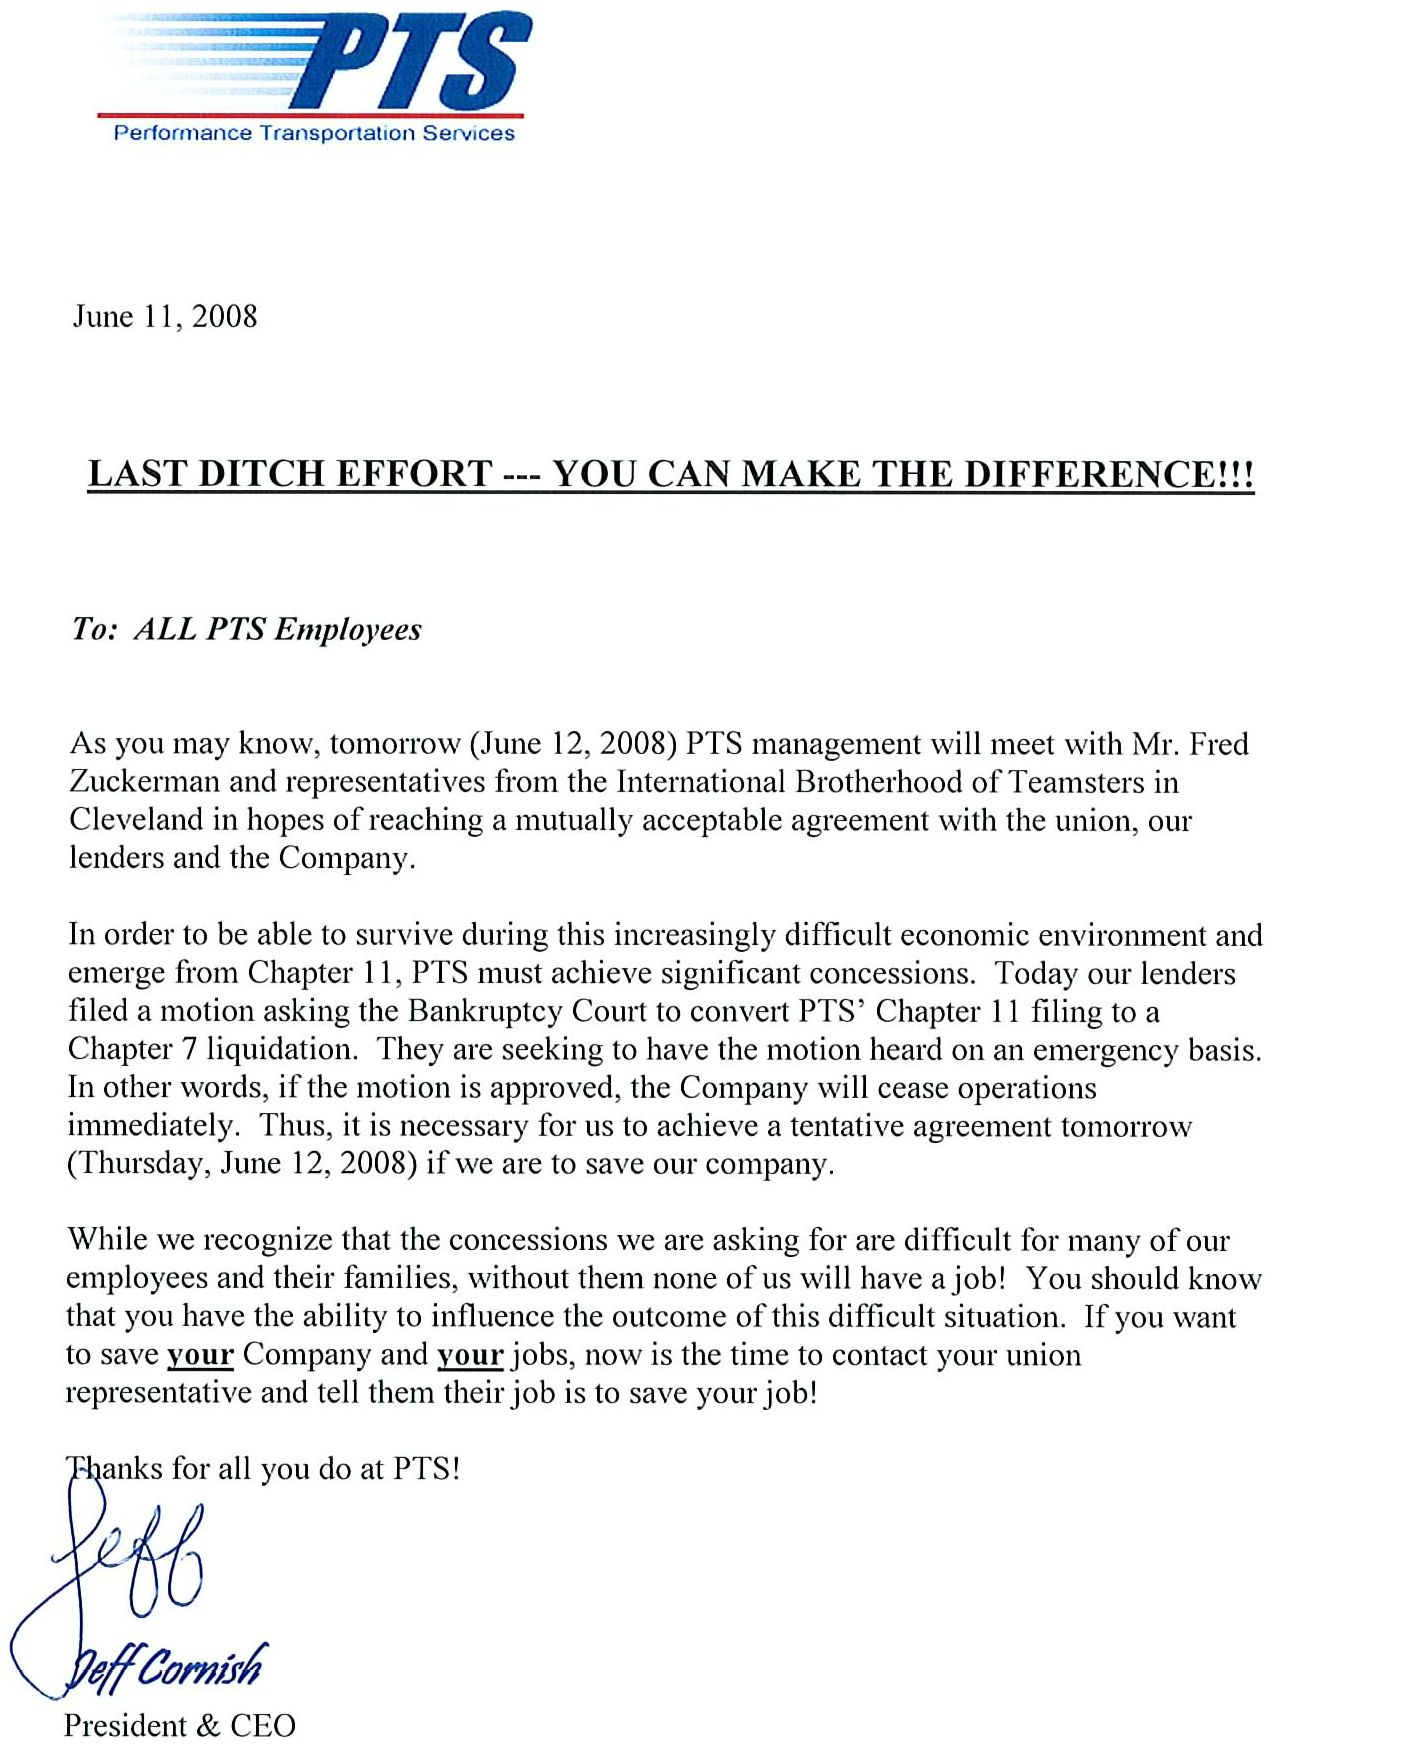 letter from jeff cornish to performance transportation services PTS employees